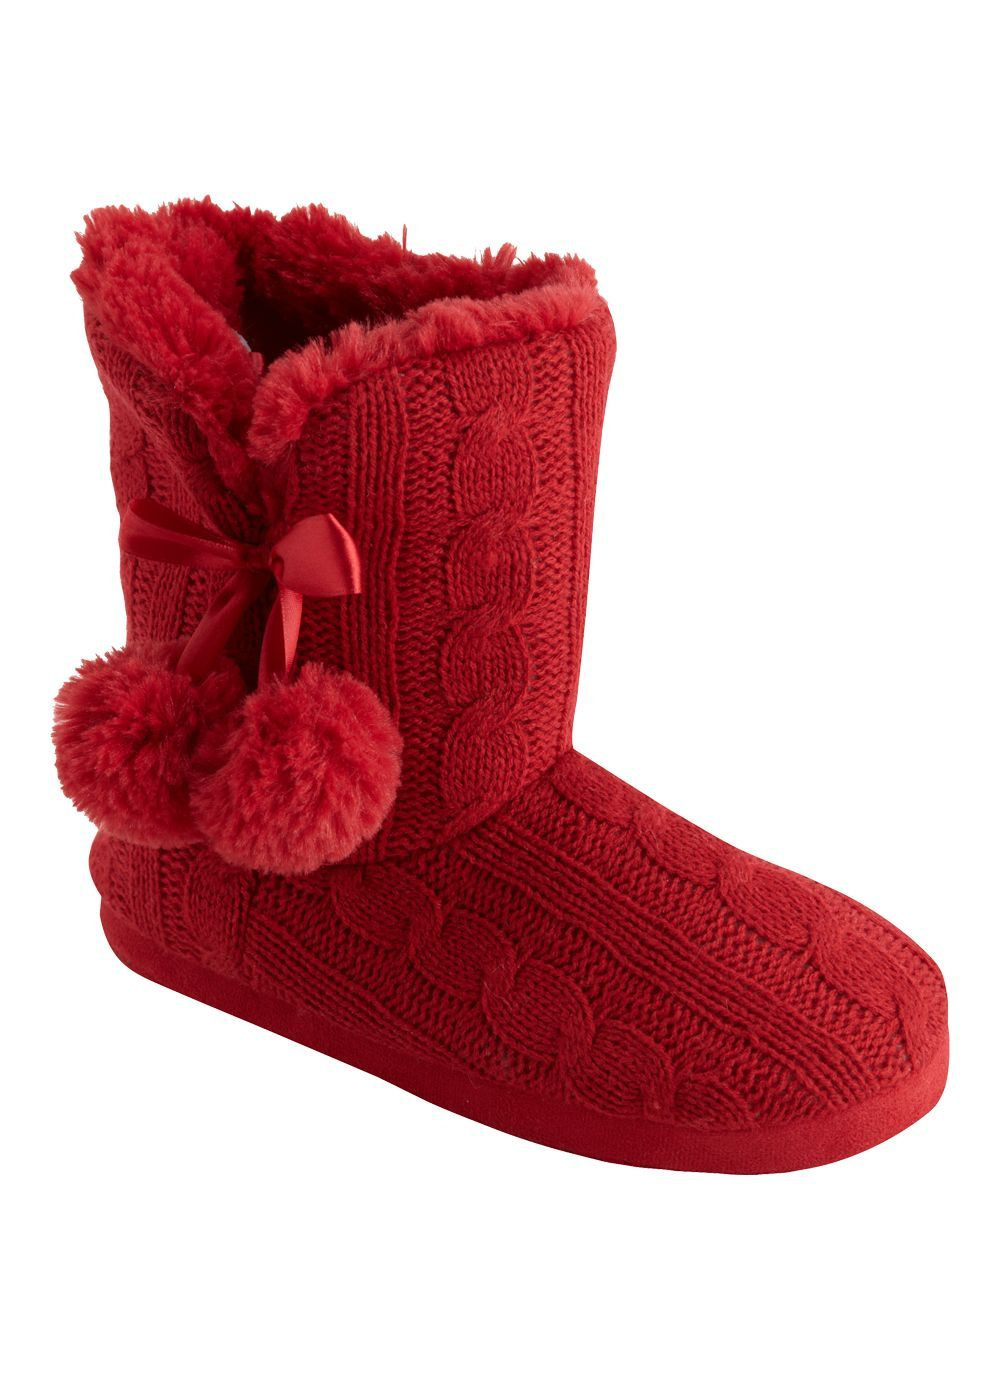 Inspire Me Cute slippers, Slipper boots, Pom pom slippers